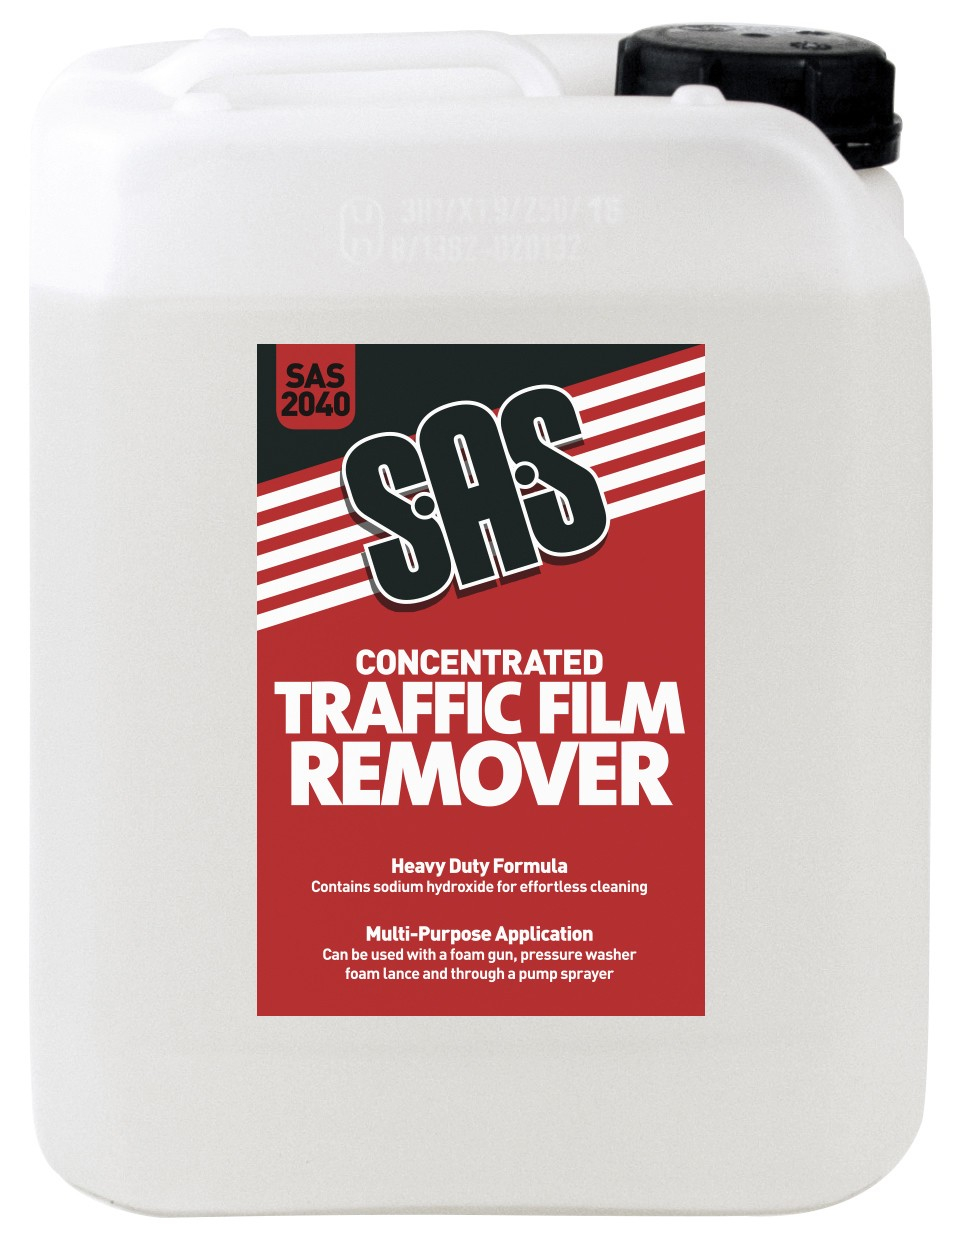 SAS2040 CONCENTRATED TRAFFIC FILM REMOVER 5 LITRES